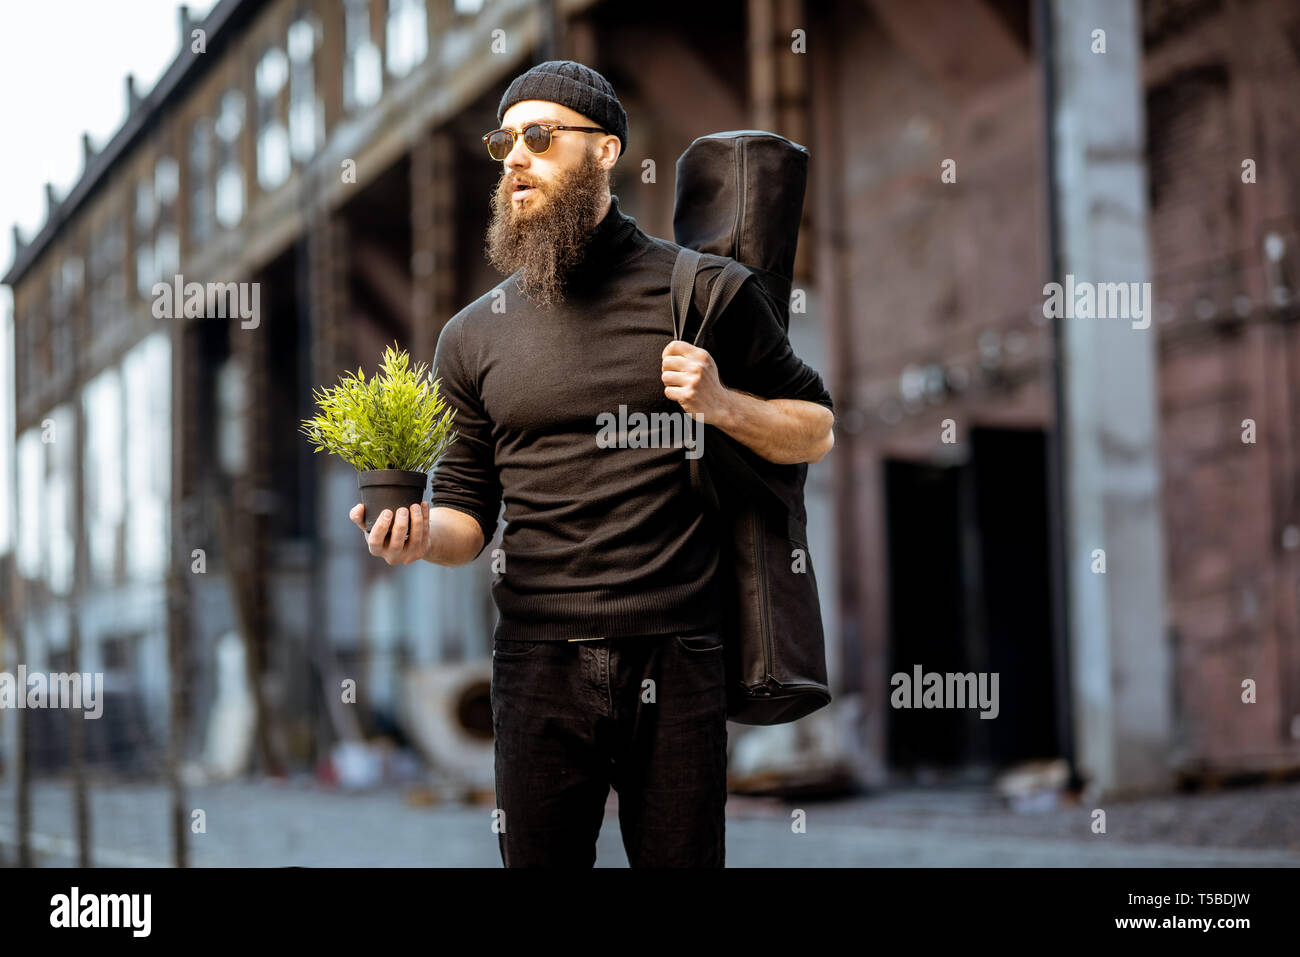 Portrait of a serious bearded man as a killer dressed in black tight clothes holding flower pot and bag with weapon outdoors - Stock Image